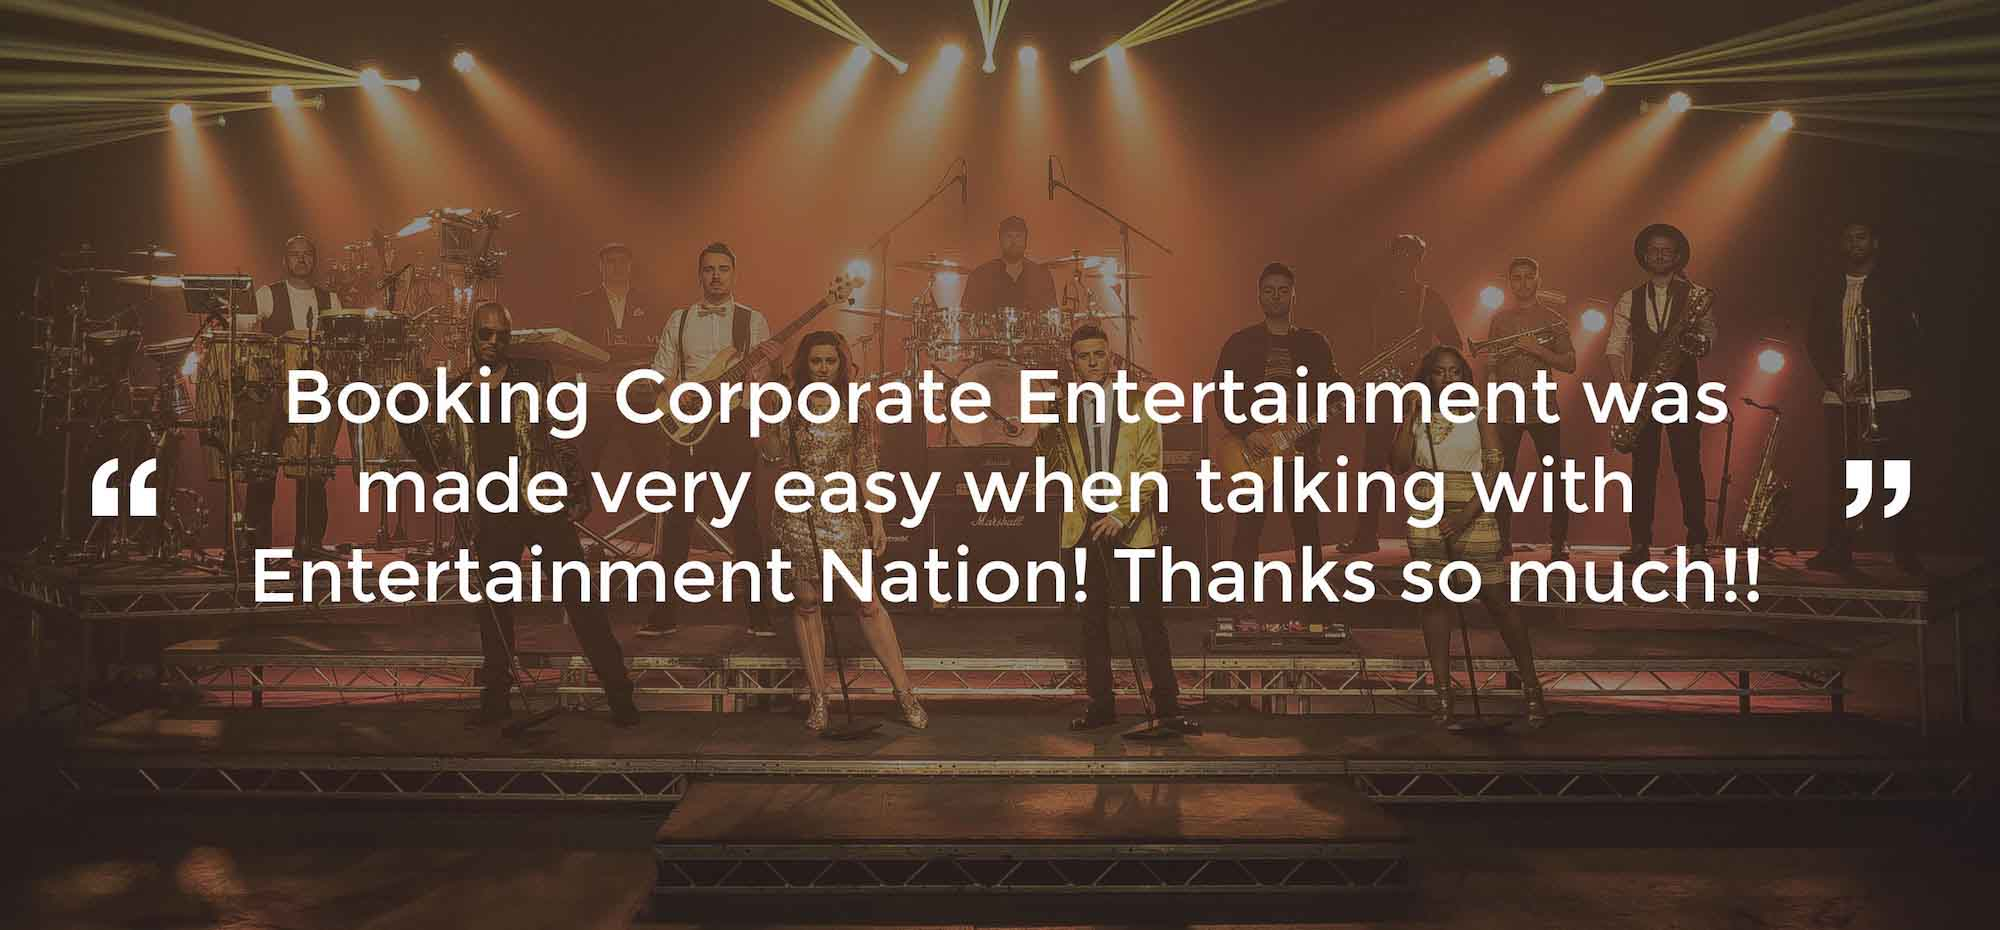 Client Review of Corporate Entertainment Bedfordshire